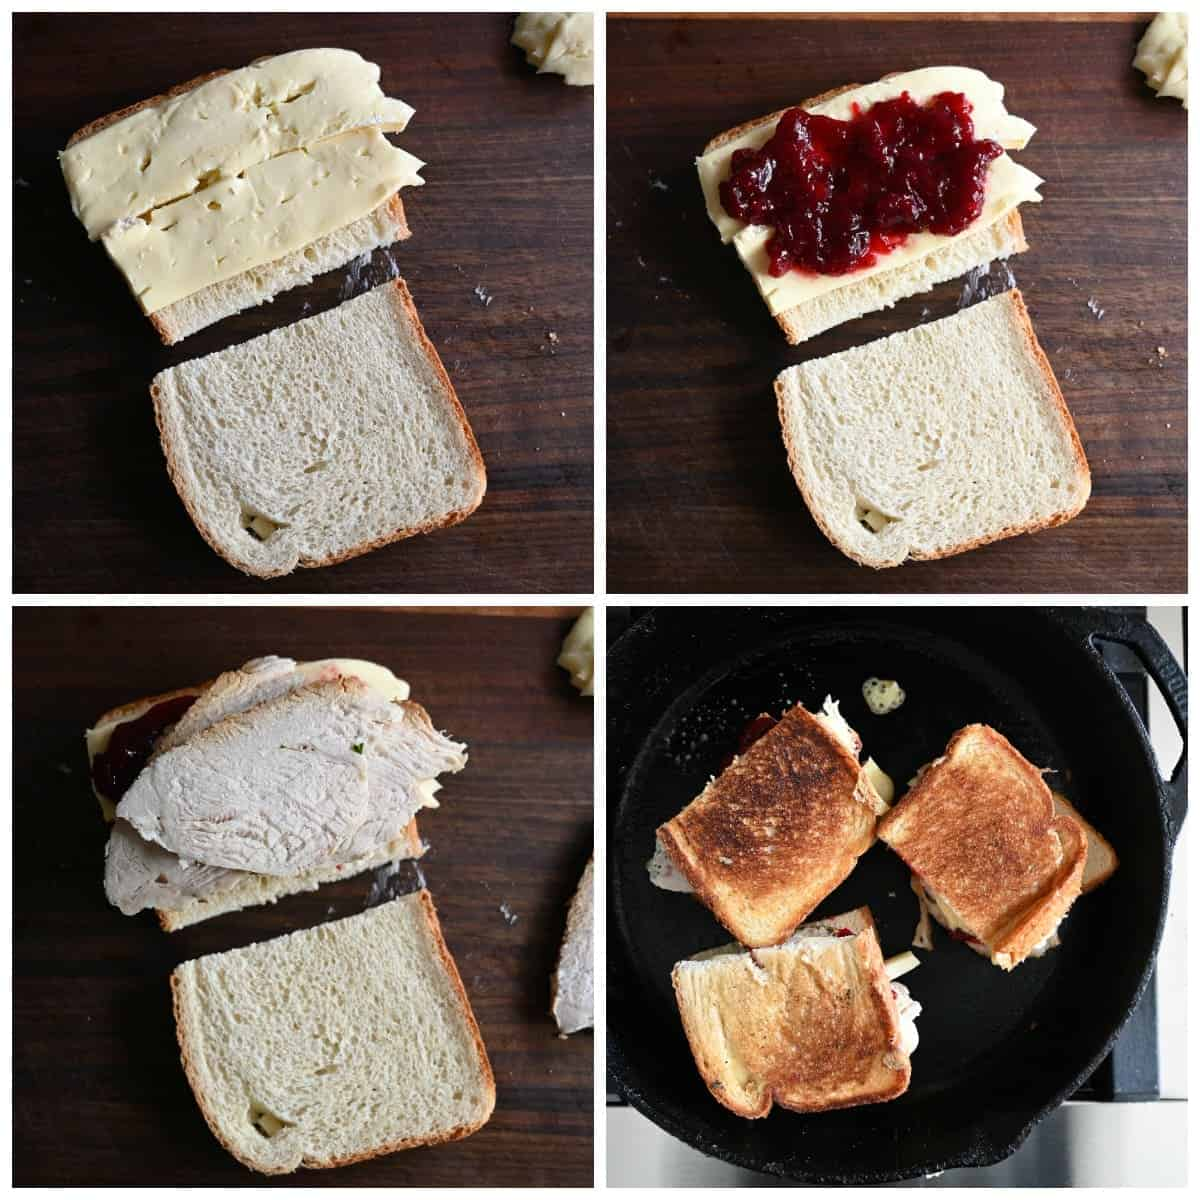 Four process photos, First one, two pieces of bread one piece with Brie cheese on top. Second one, cranberry sauce on top of the brie cheese. Third one, slices of turkey on top of the cranberry sauce. Fourth one, three sandwiches golden bron and melted in a skillet.